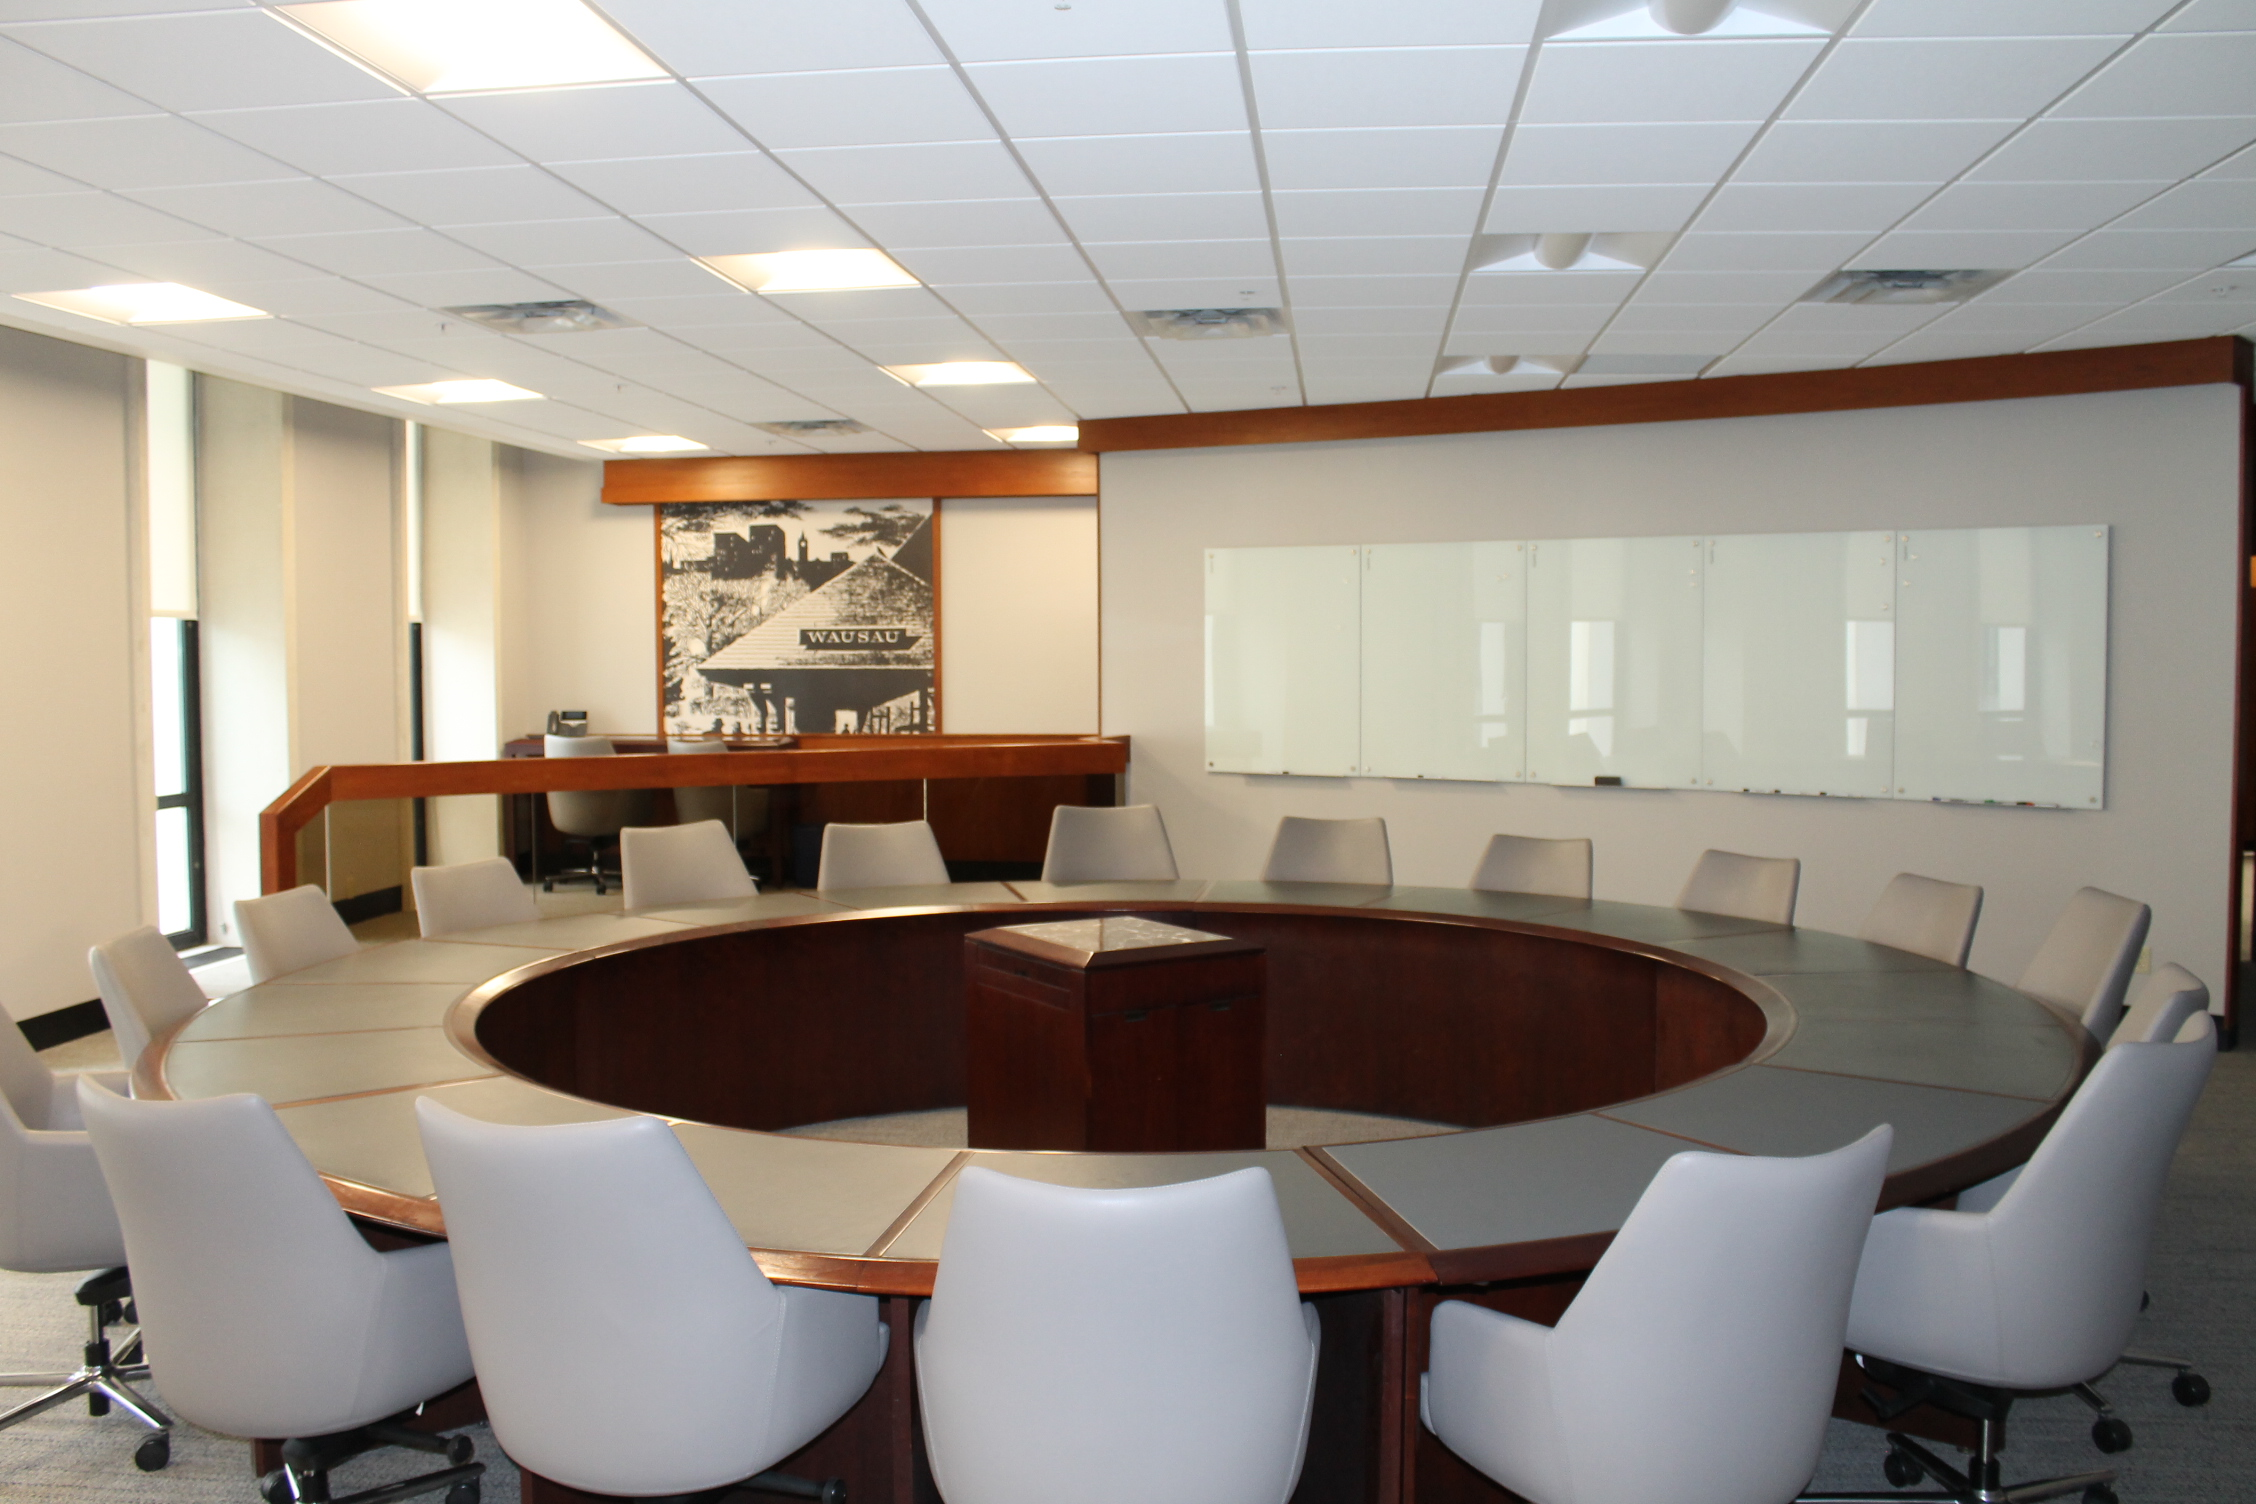 corporate office interior. Aspirus, Inc. Corporate Office Interior Renovations L